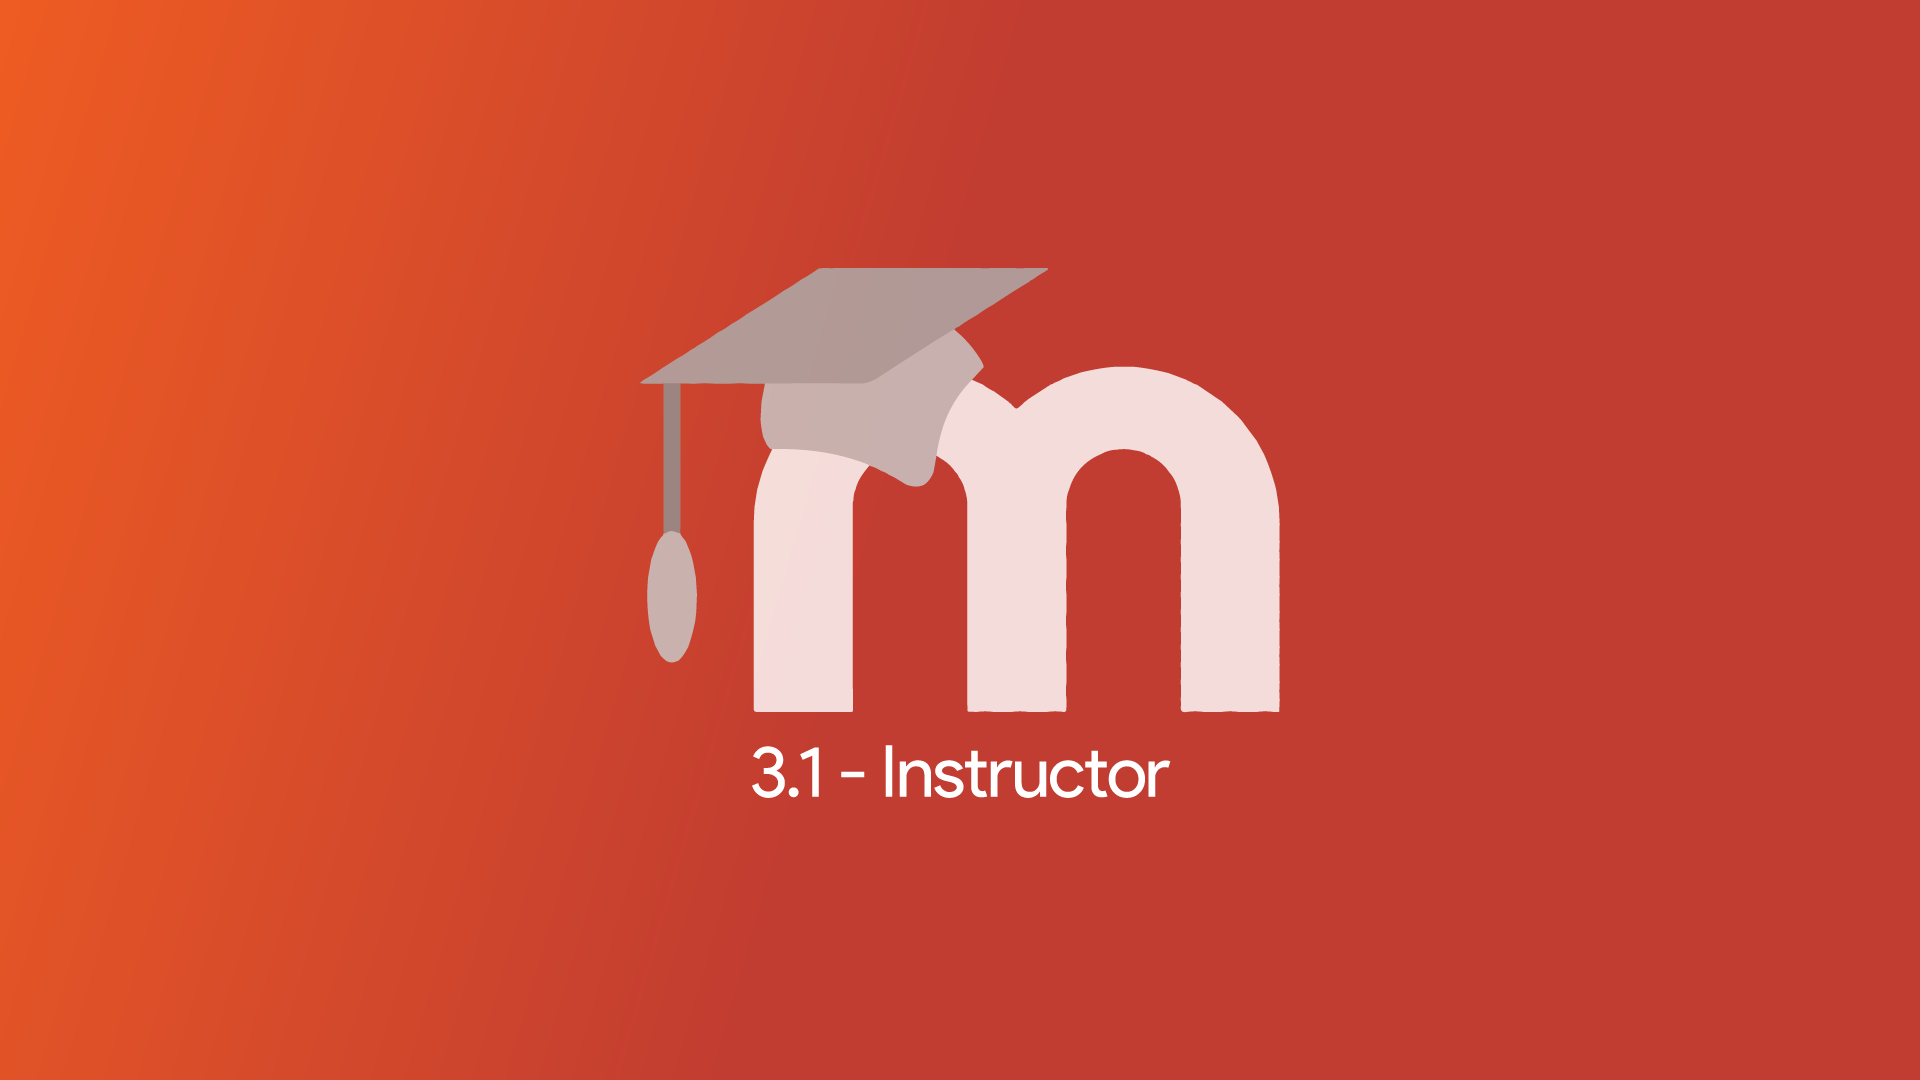 Moodle 3.1 - Instructor